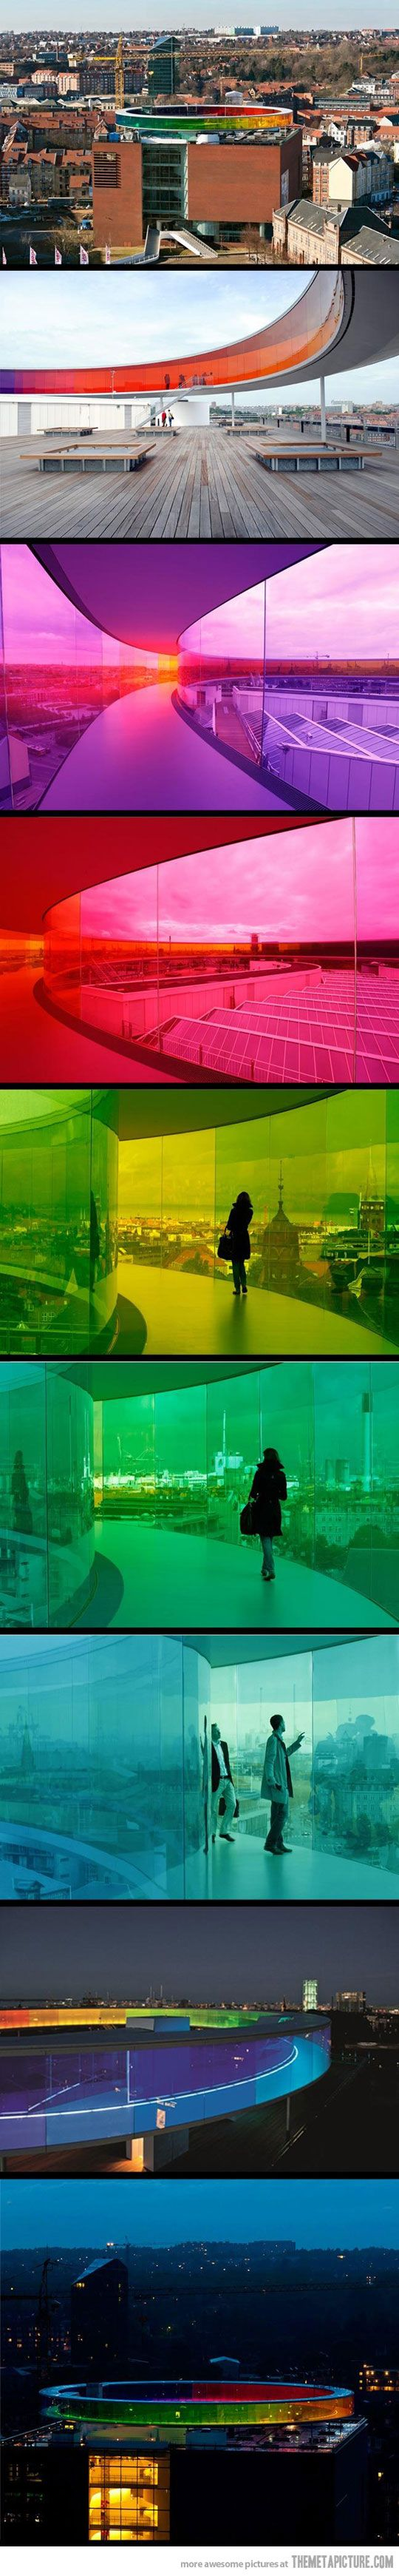 "I hope to go there someday!!  Olafur Eliasson's, ""Your rainbow panorama,"" is a circular, panoramic walkway, in all the colors of the rainbow, constructed on the roof of the cubic museum building designed by schmidt hammer lassen. The ARoS building [in Aarhus, Denmark] was inspired by Dante's 'Divine Comedy'...""  Read more here: http://www.arcspace.com/architects/olafur_eliasson/rainbow-panorama/rainbow-panorama.html"